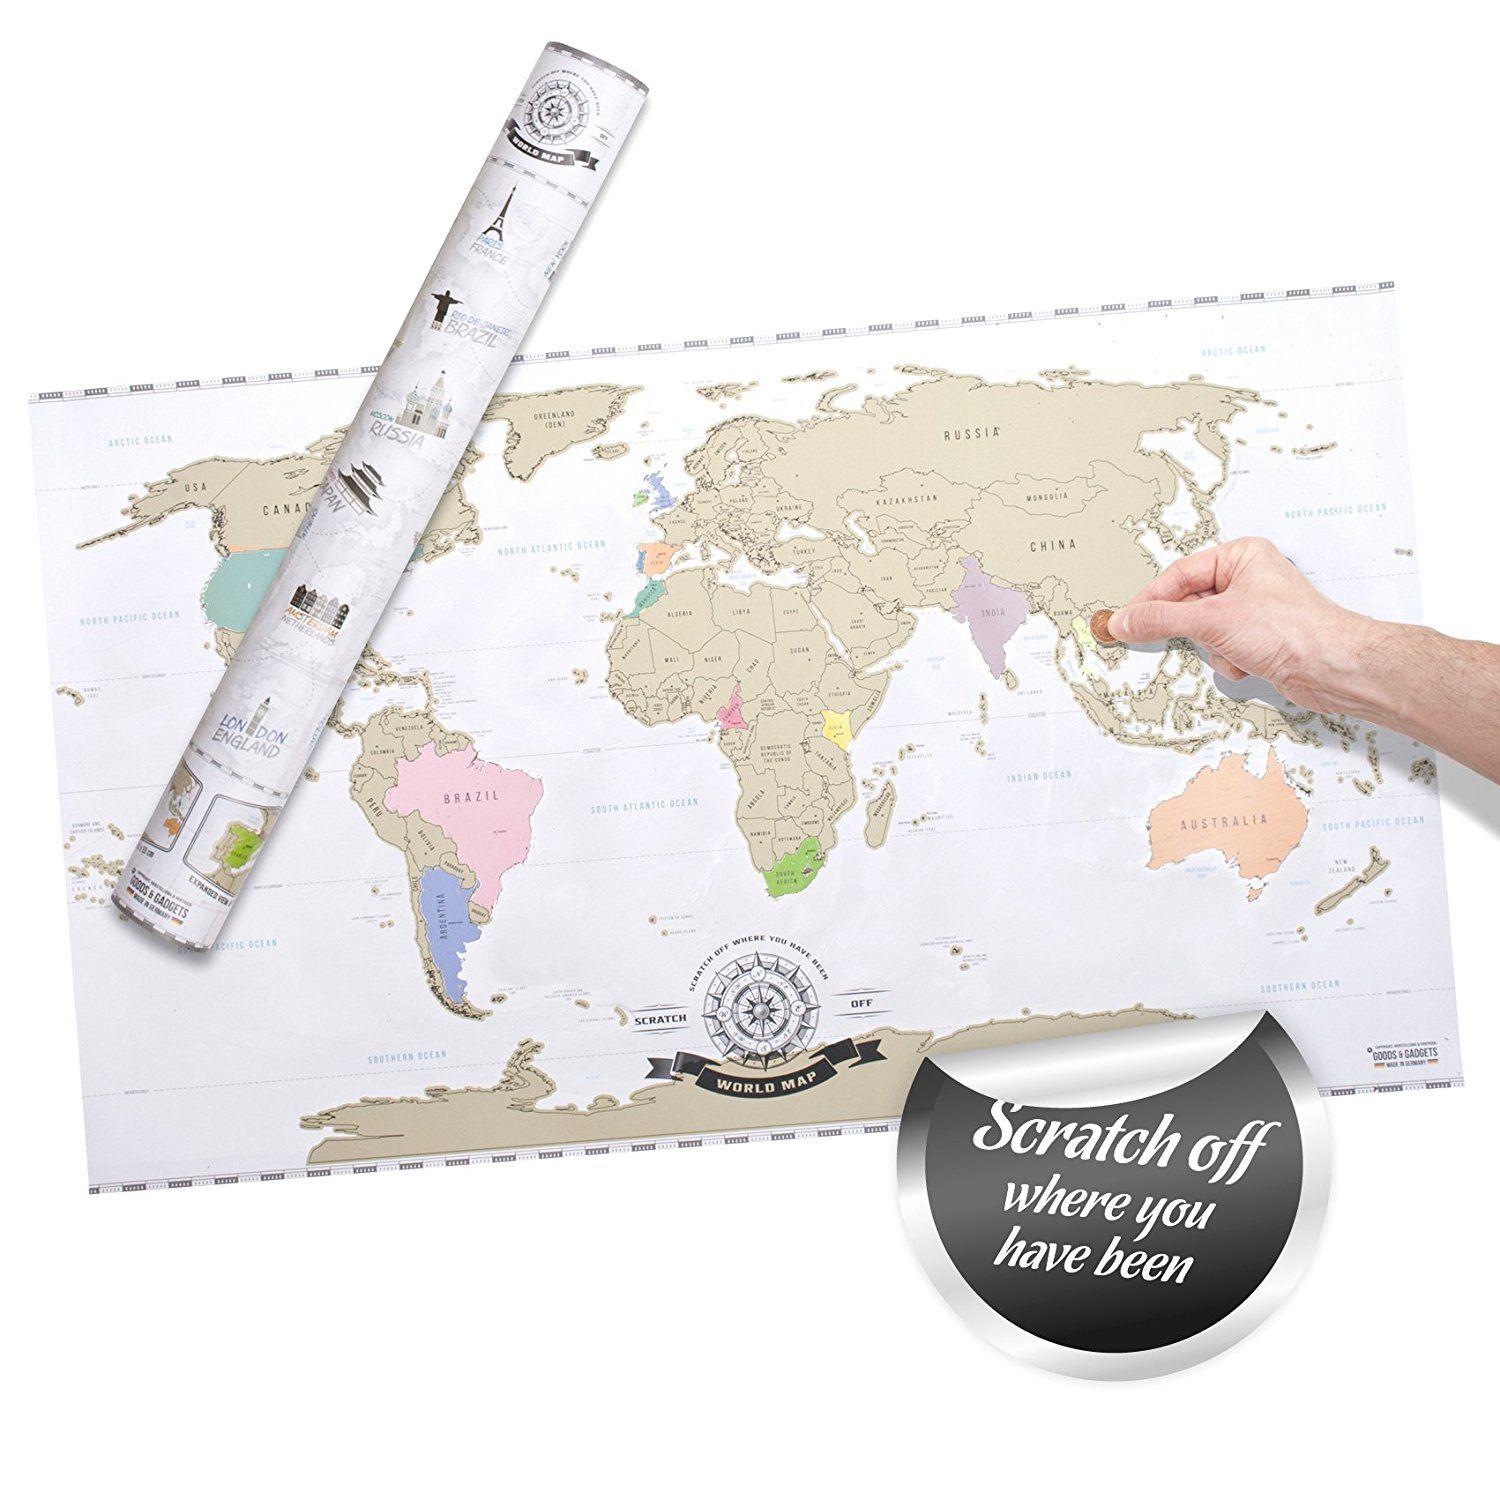 Scratch off world map deluxe personalized travel map poster xxl scratch off world map deluxe personalized travel map poster xxl gumiabroncs Images